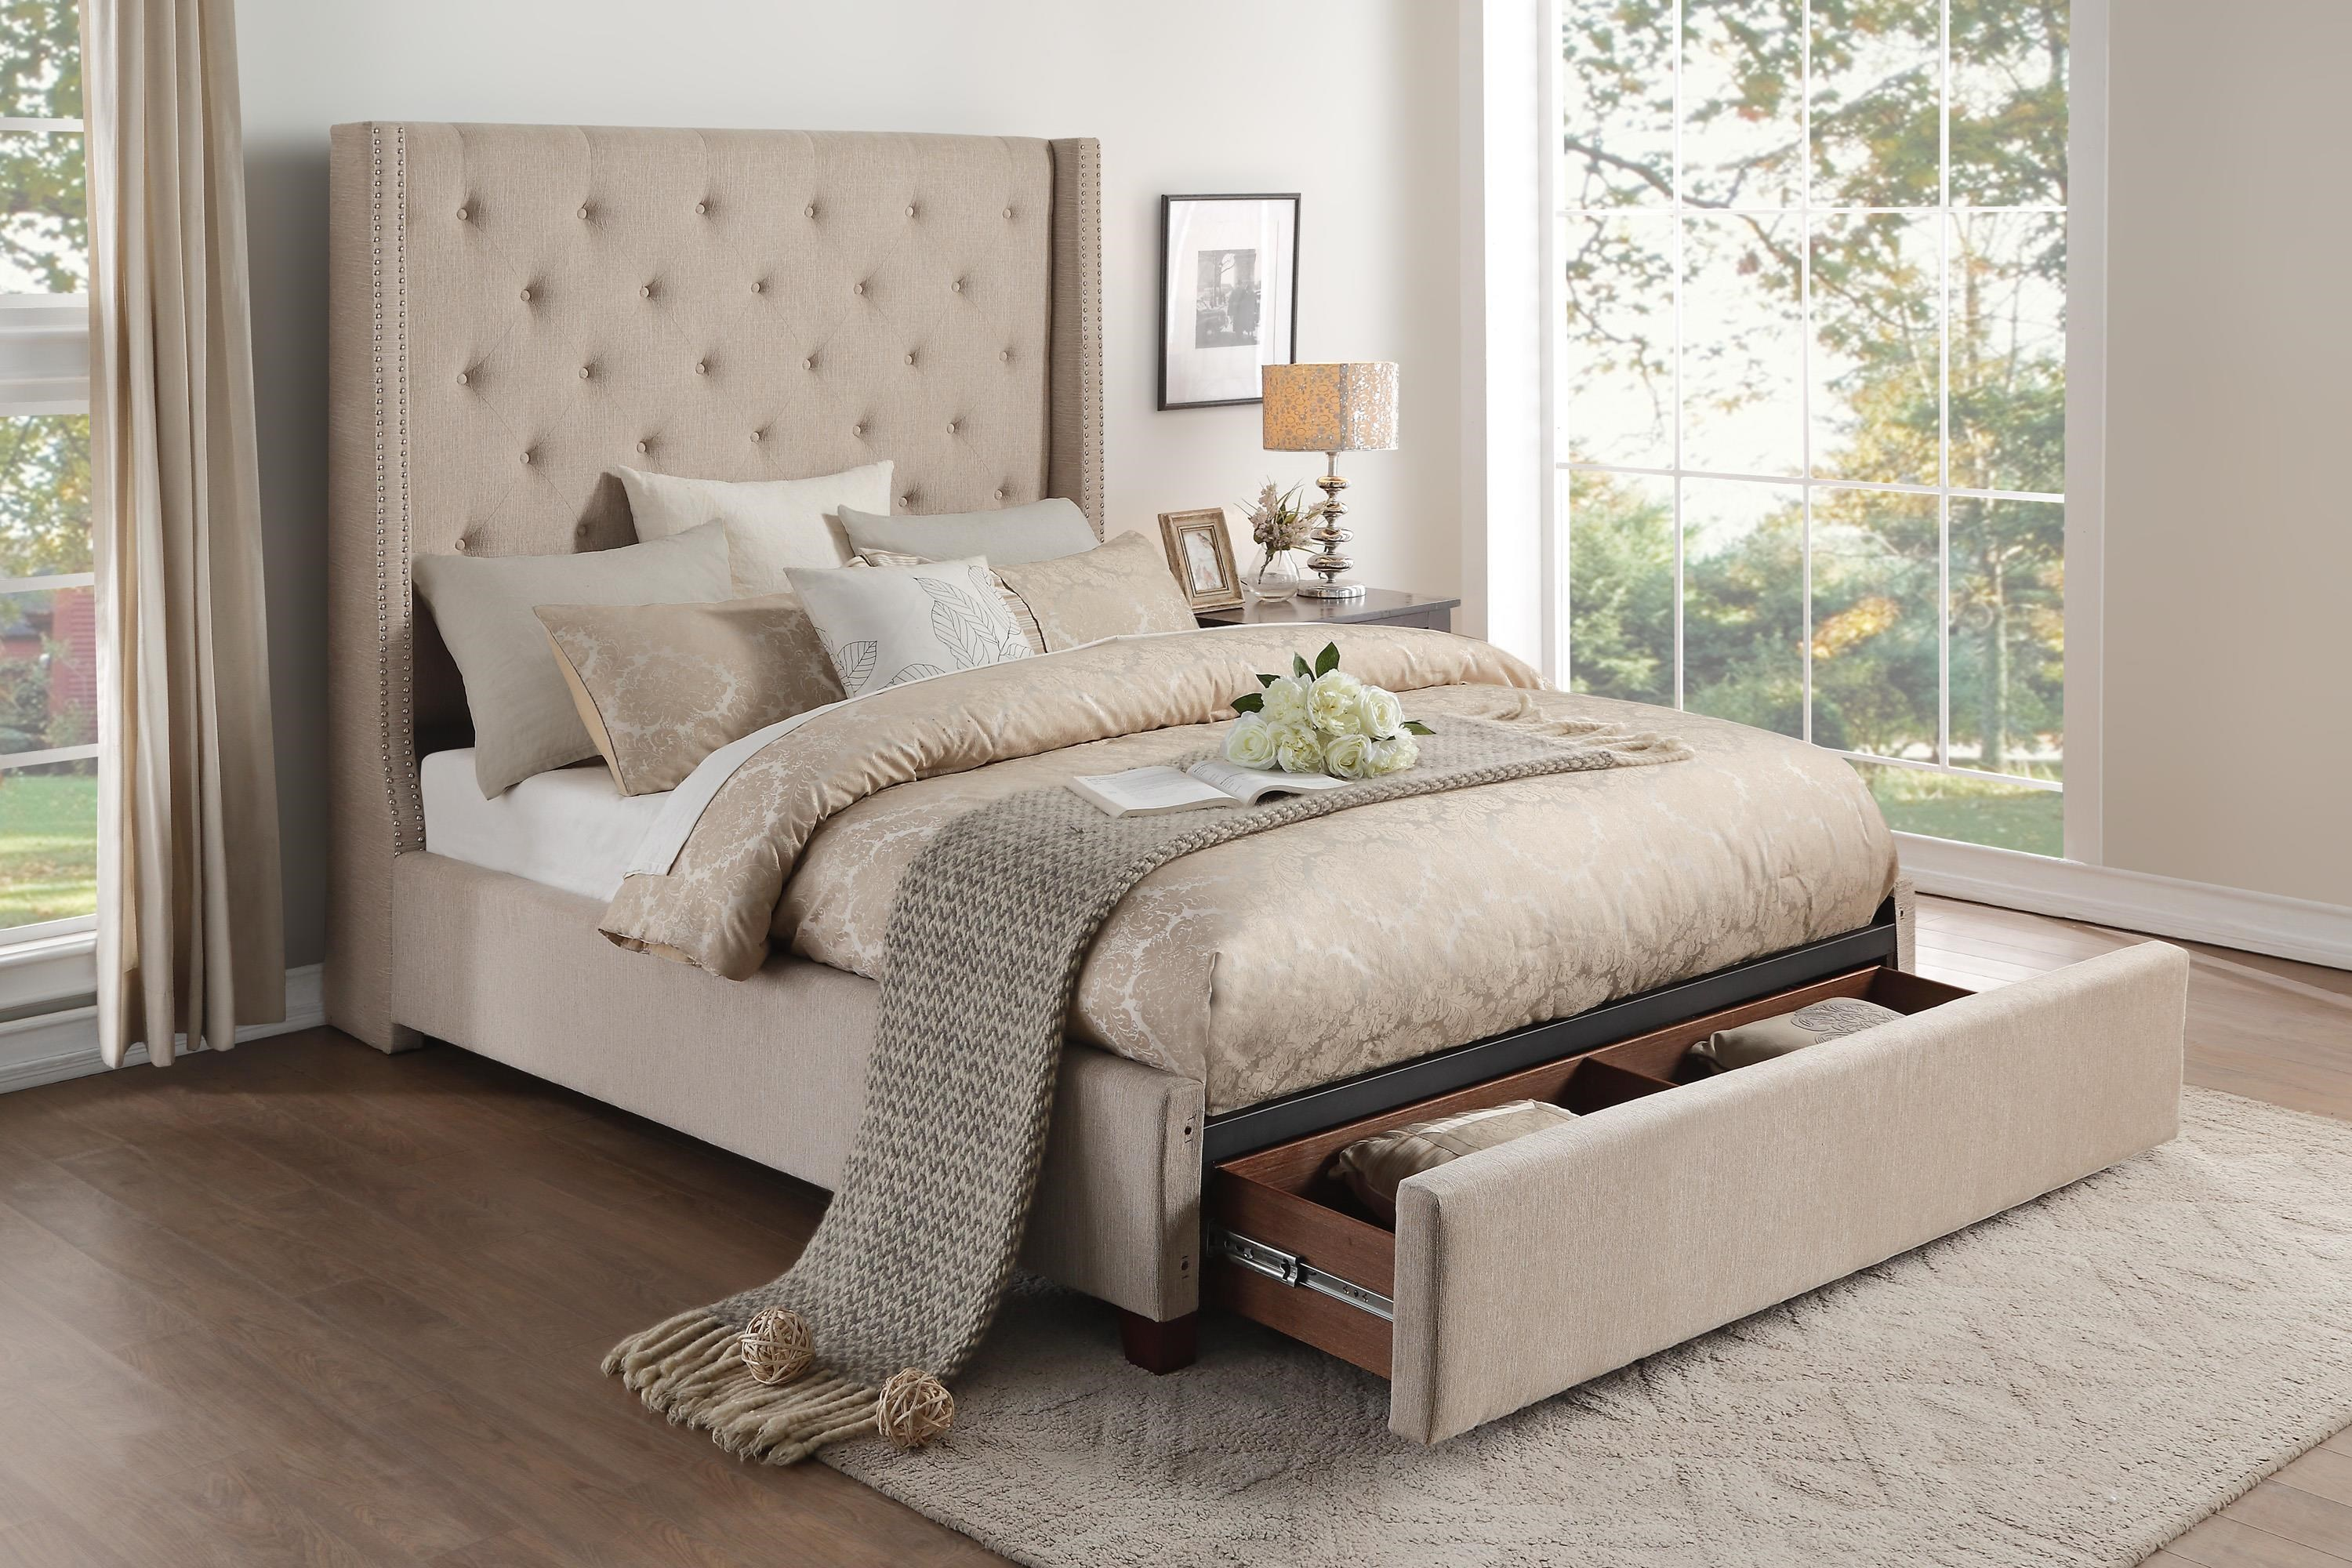 Geneva Queen Upholstered Storage Bed by Home Style at Walker's Furniture